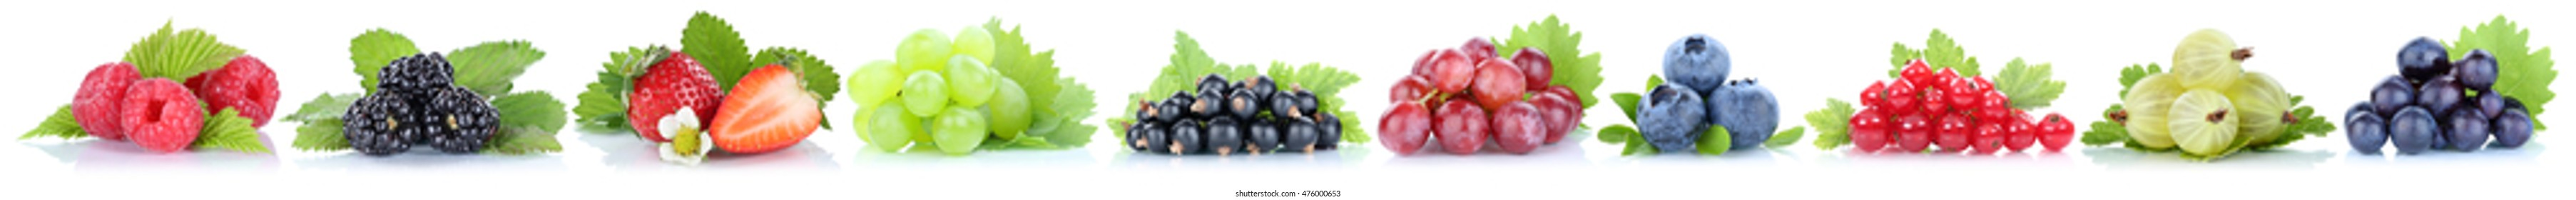 Collection of berries grapes strawberries blueberries berry organic fruits in a row isolated